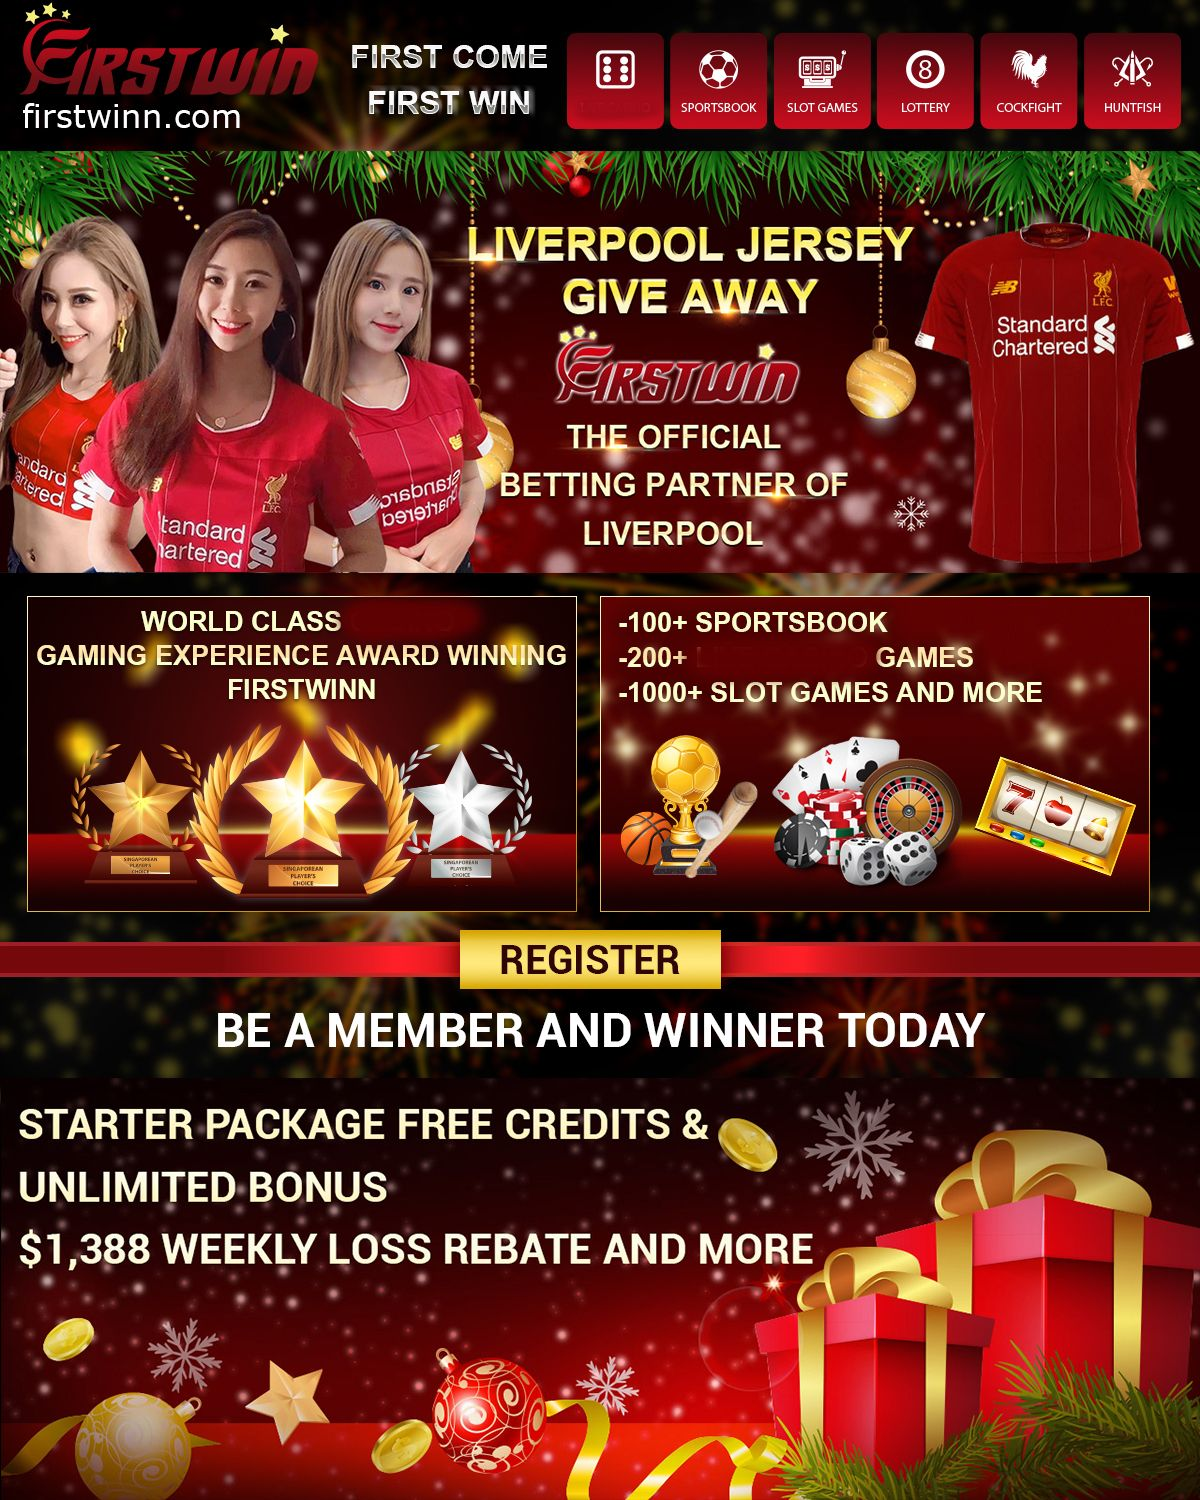 LIVERPOOL JERSEY GIVE AWAY Online casino FirstWin just be